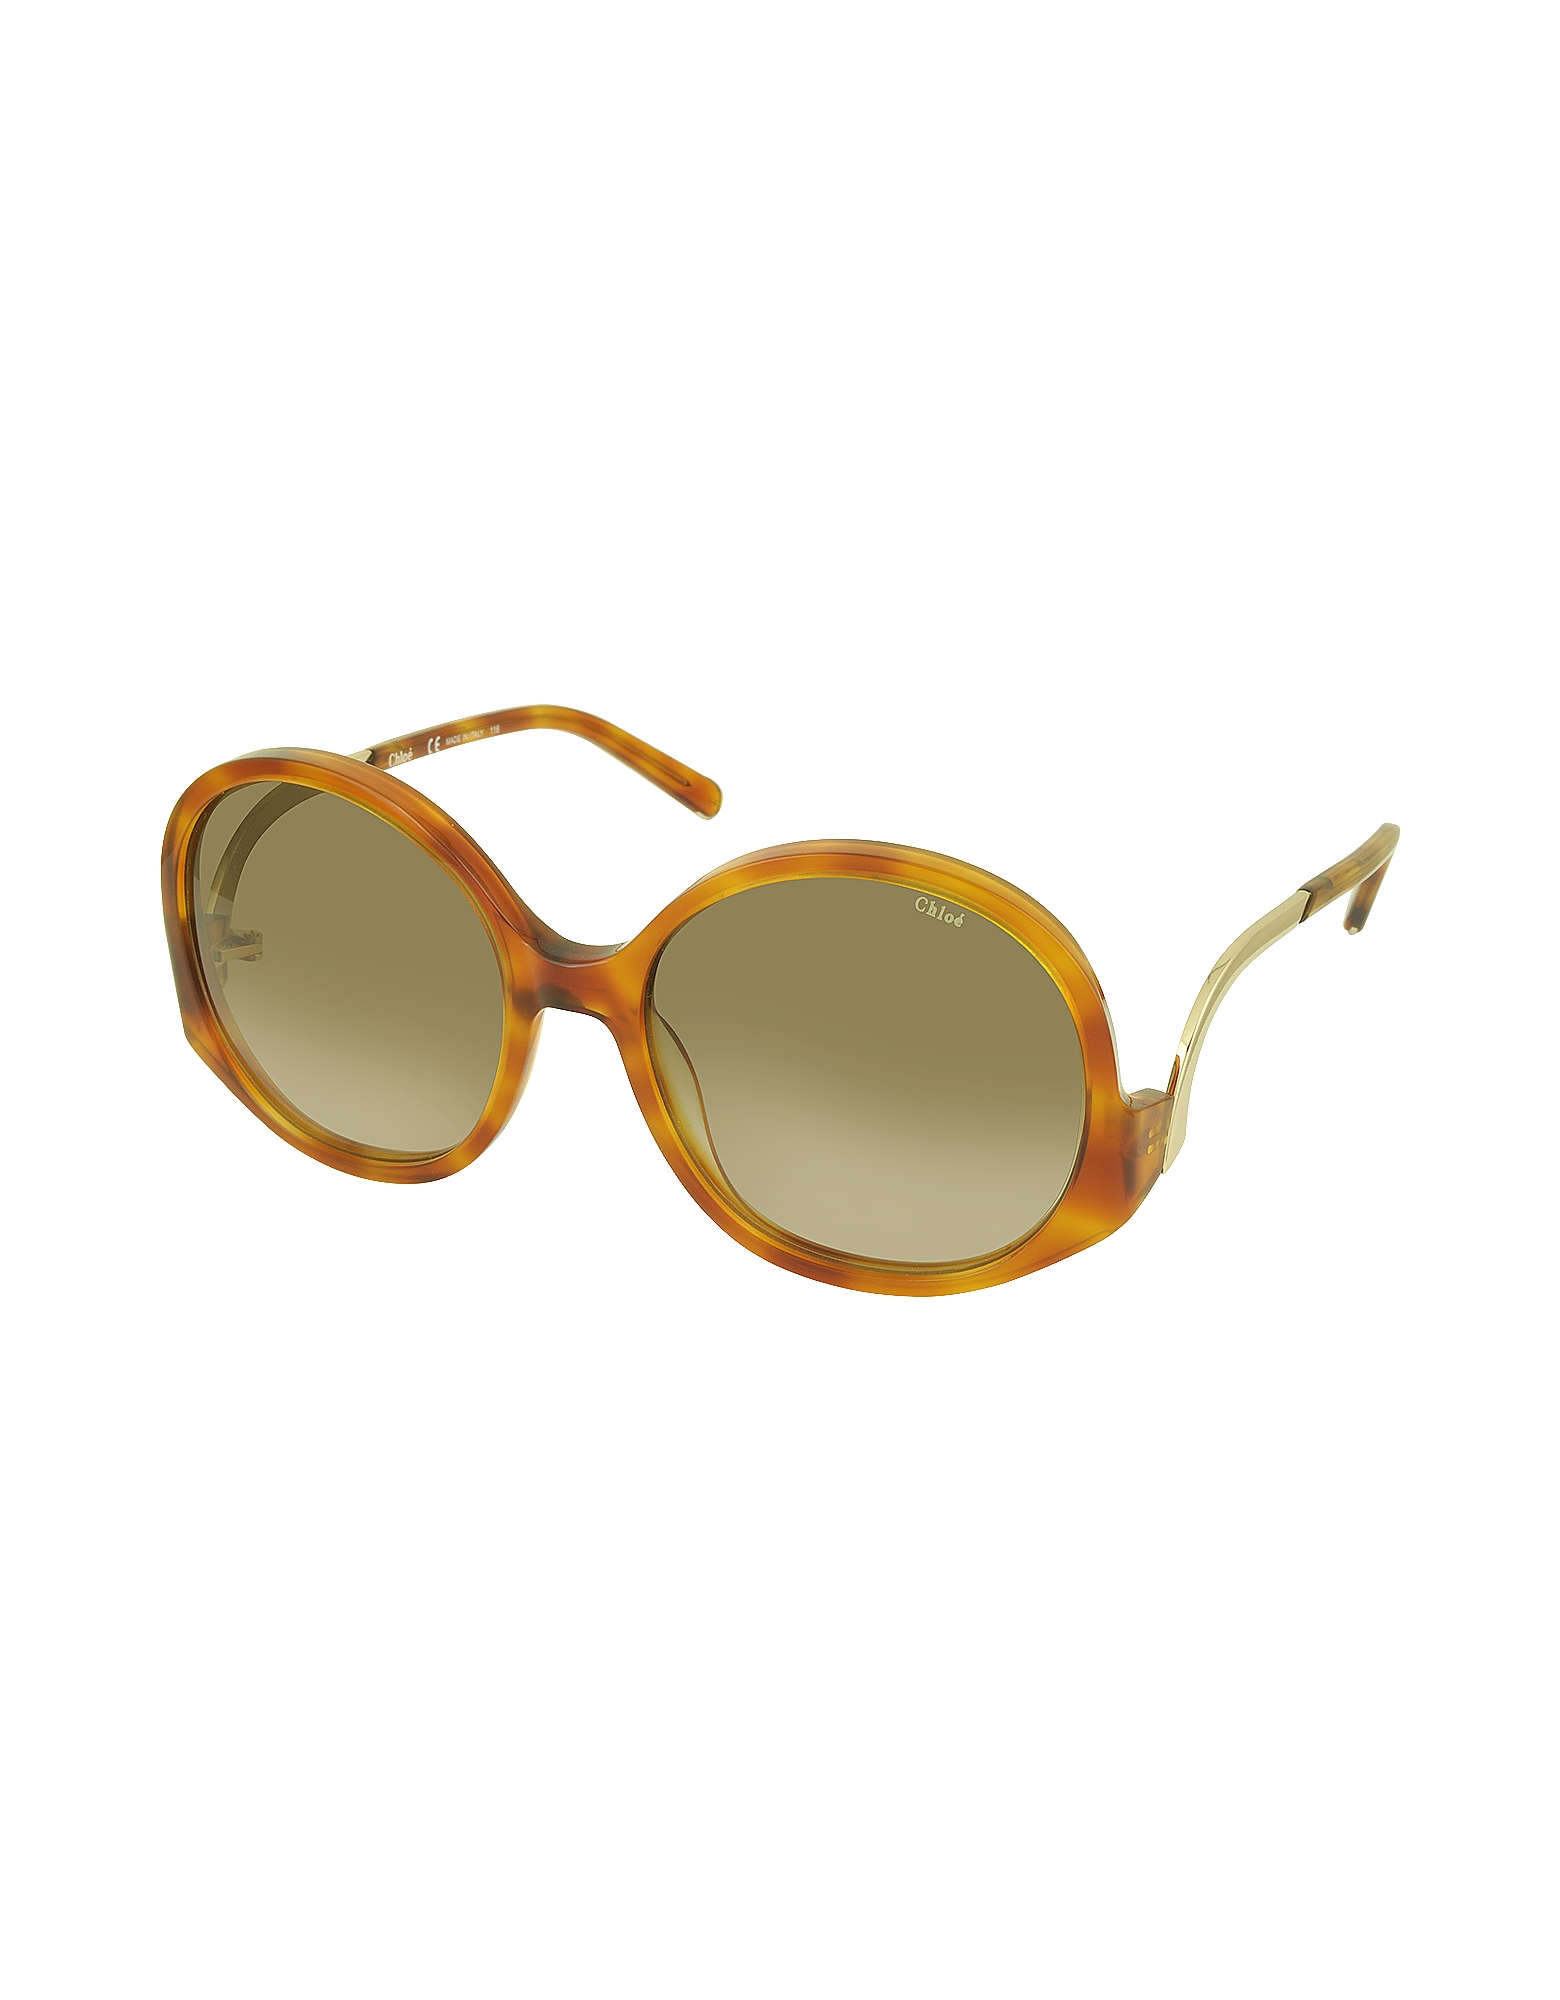 CE 707S 725 Light Havana Acetate Square Women's Sunglasses от Forzieri.com INT